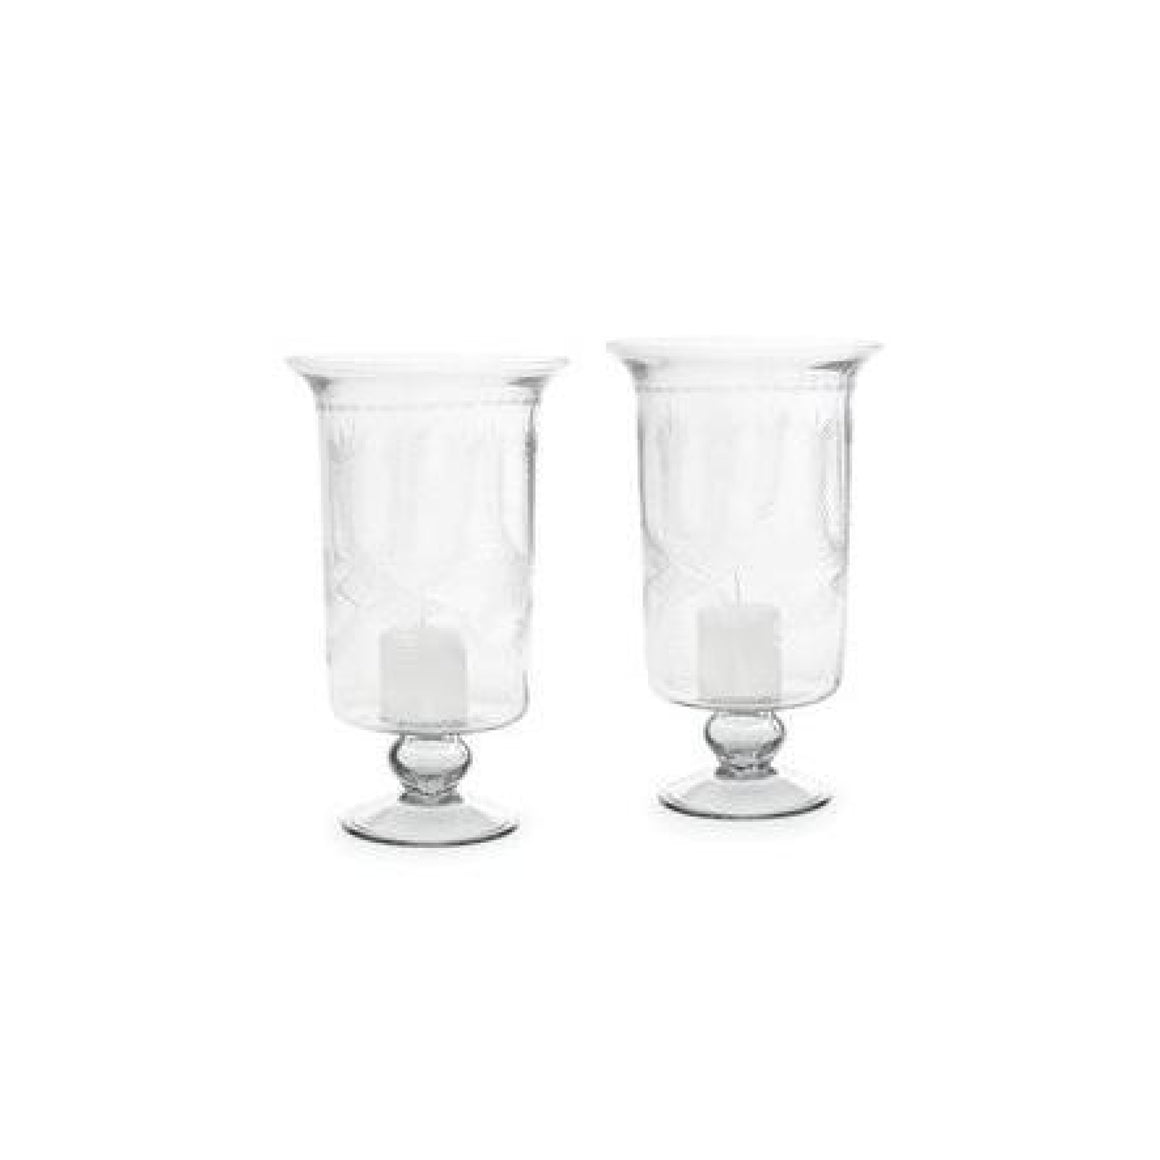 Pair of Wheat Hurricane Glasses